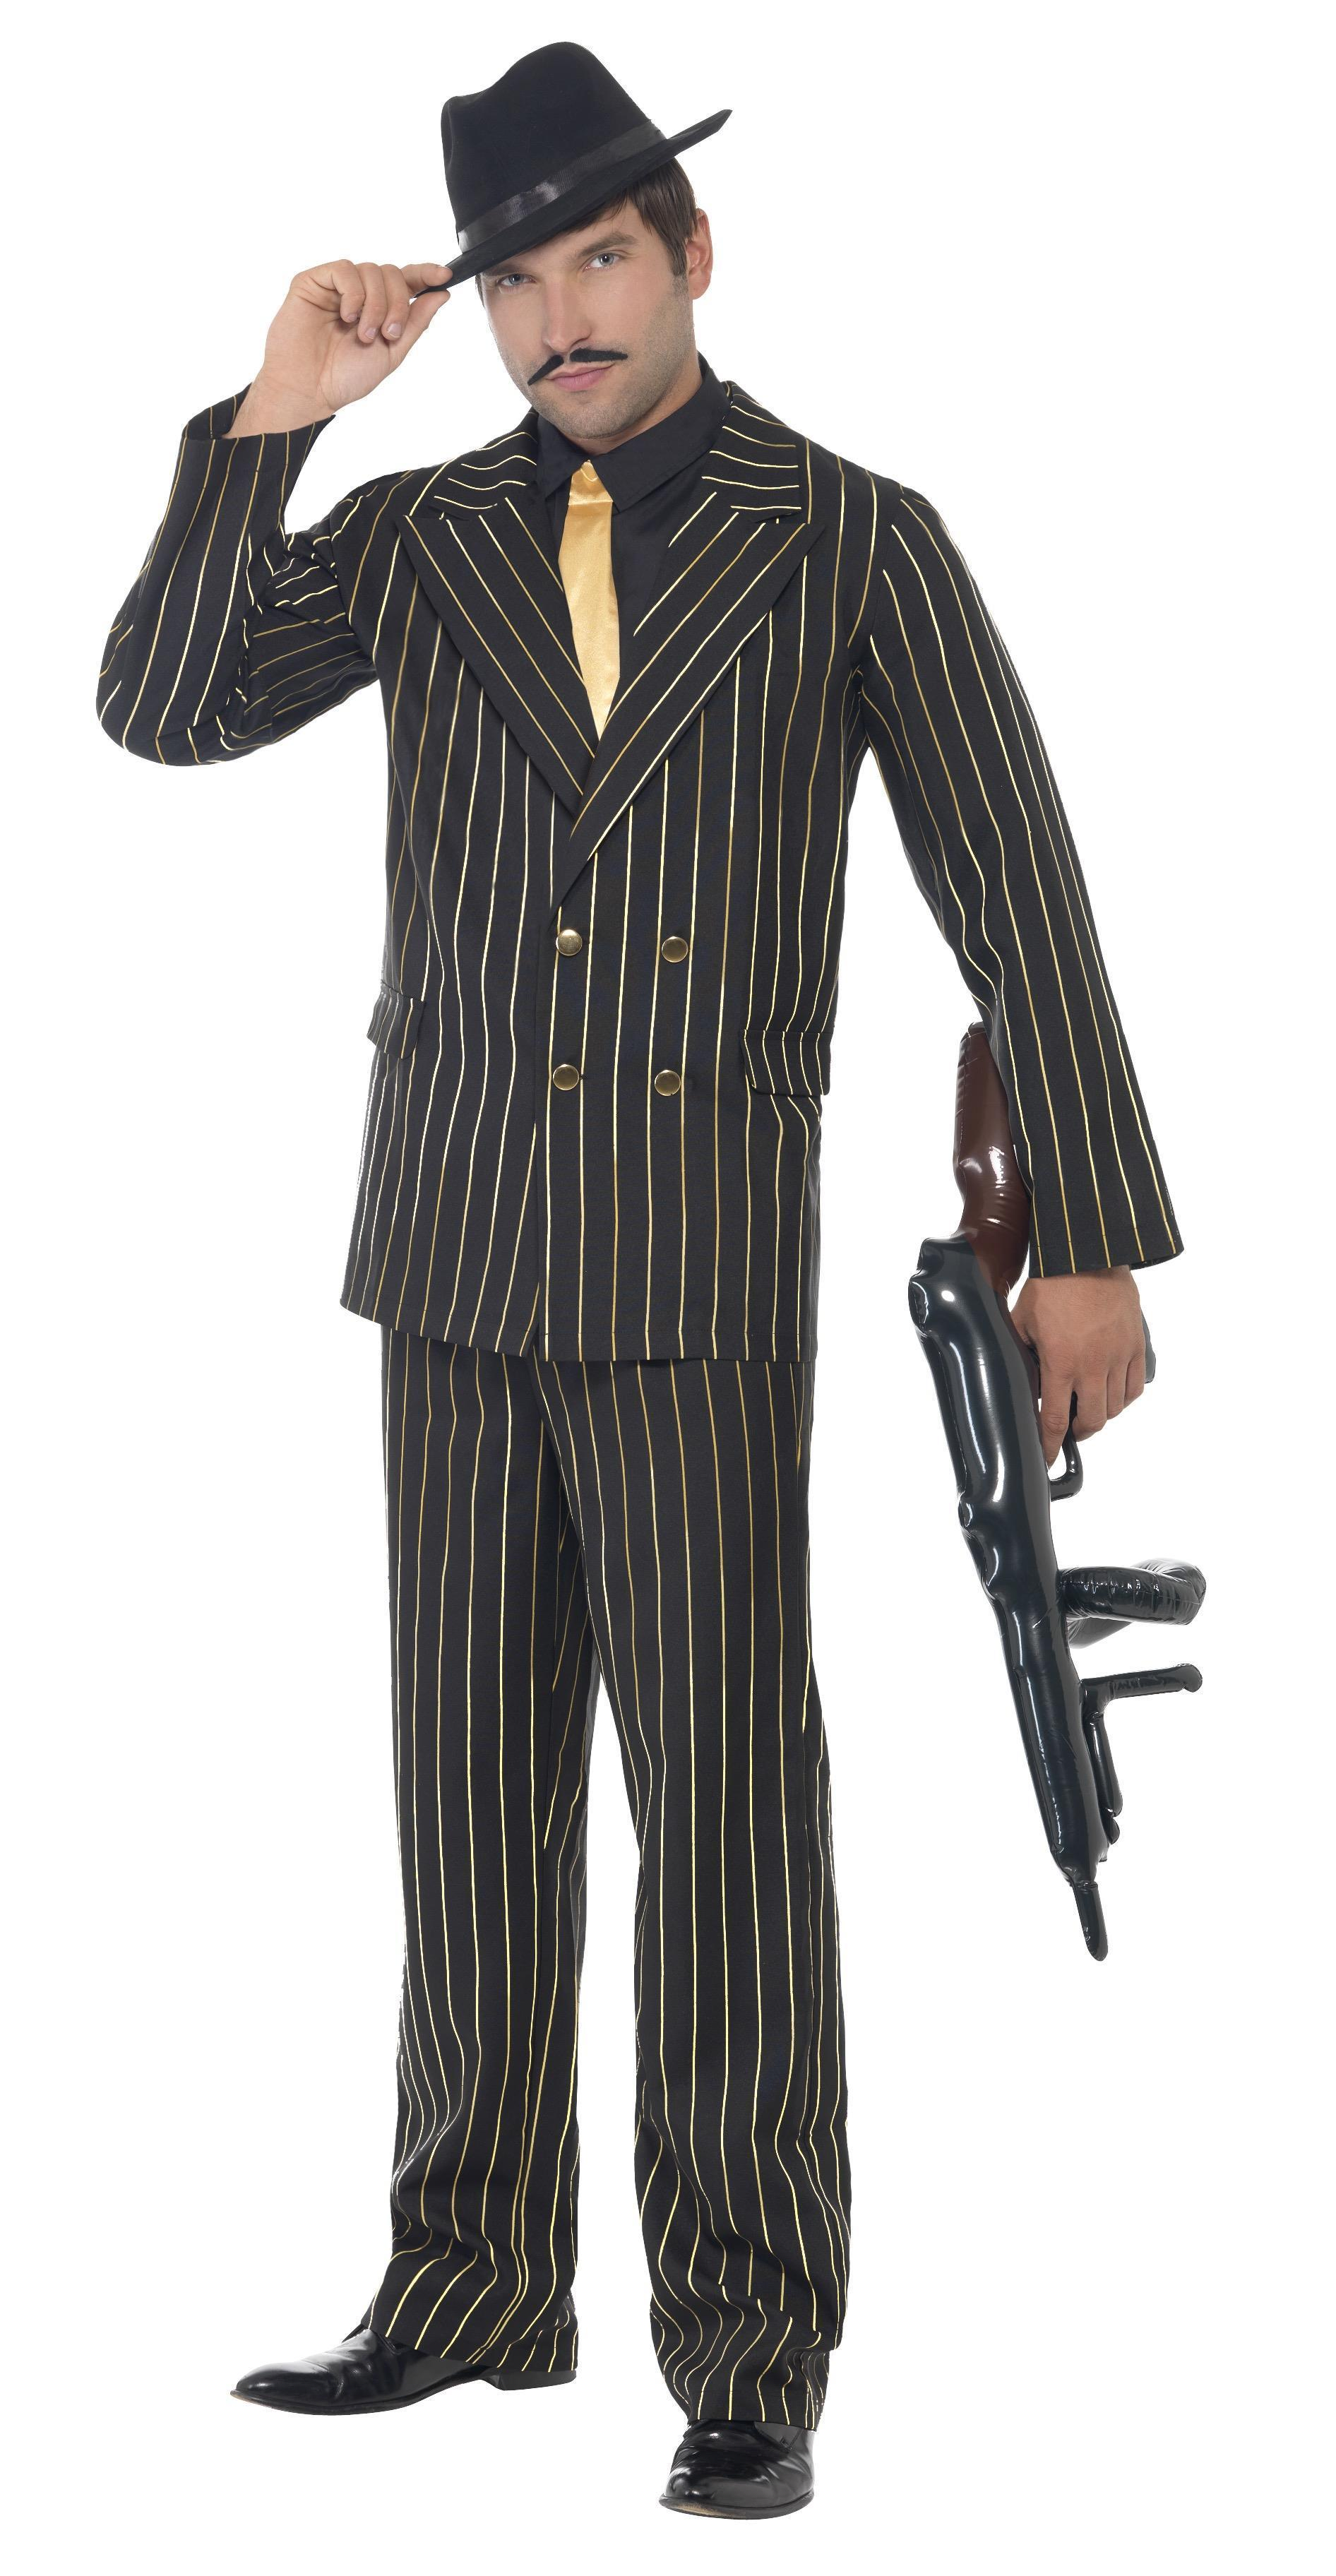 INFLATABLE TOY TOMMY GUN FANCY DRESS COSTUME 20/'s ACCESSORY GANGSTER MR T ARMY